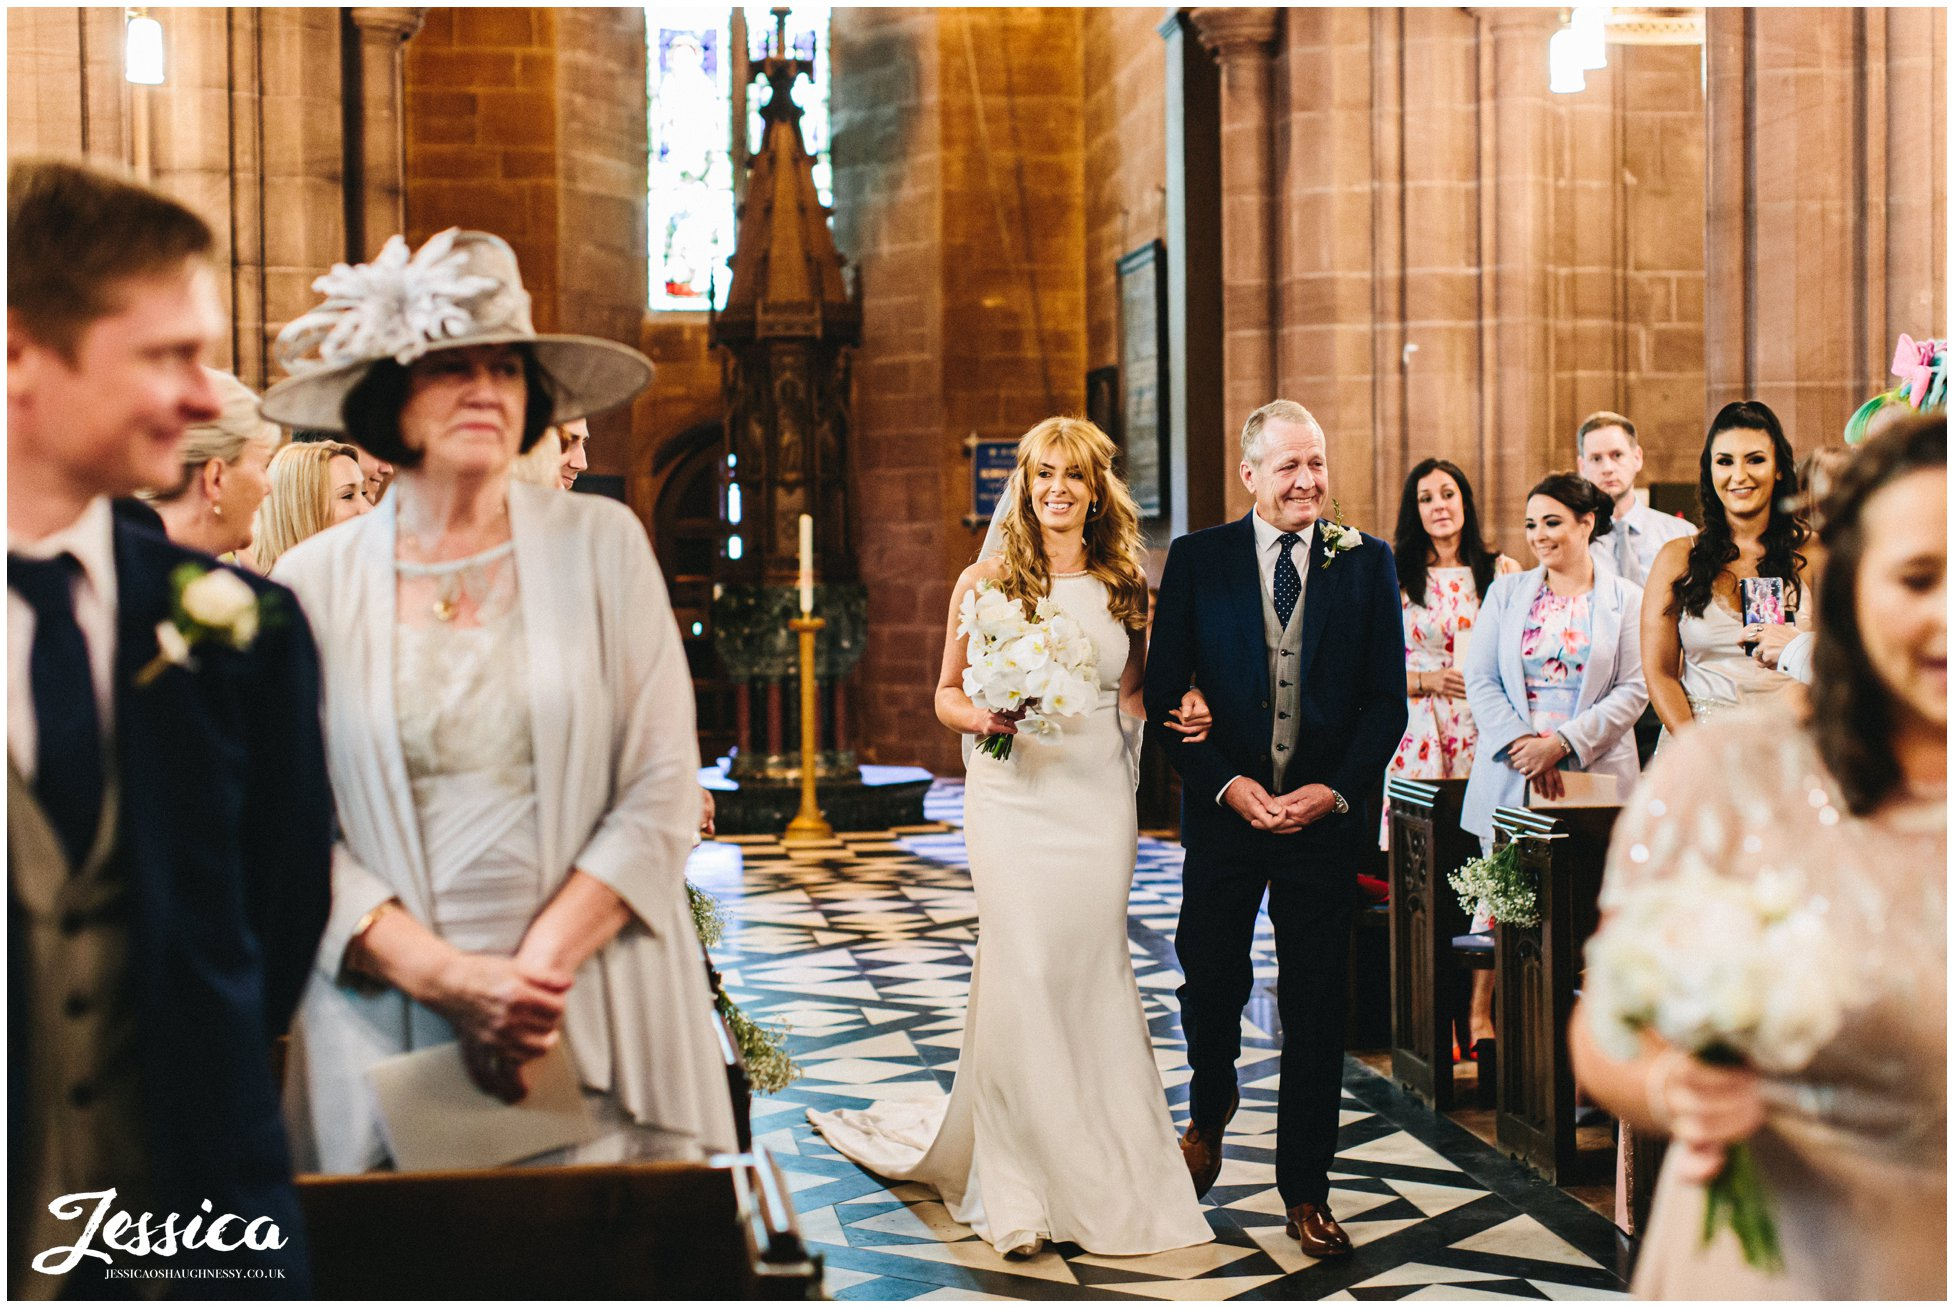 the bride walks down the aisle at eccleston church in chester